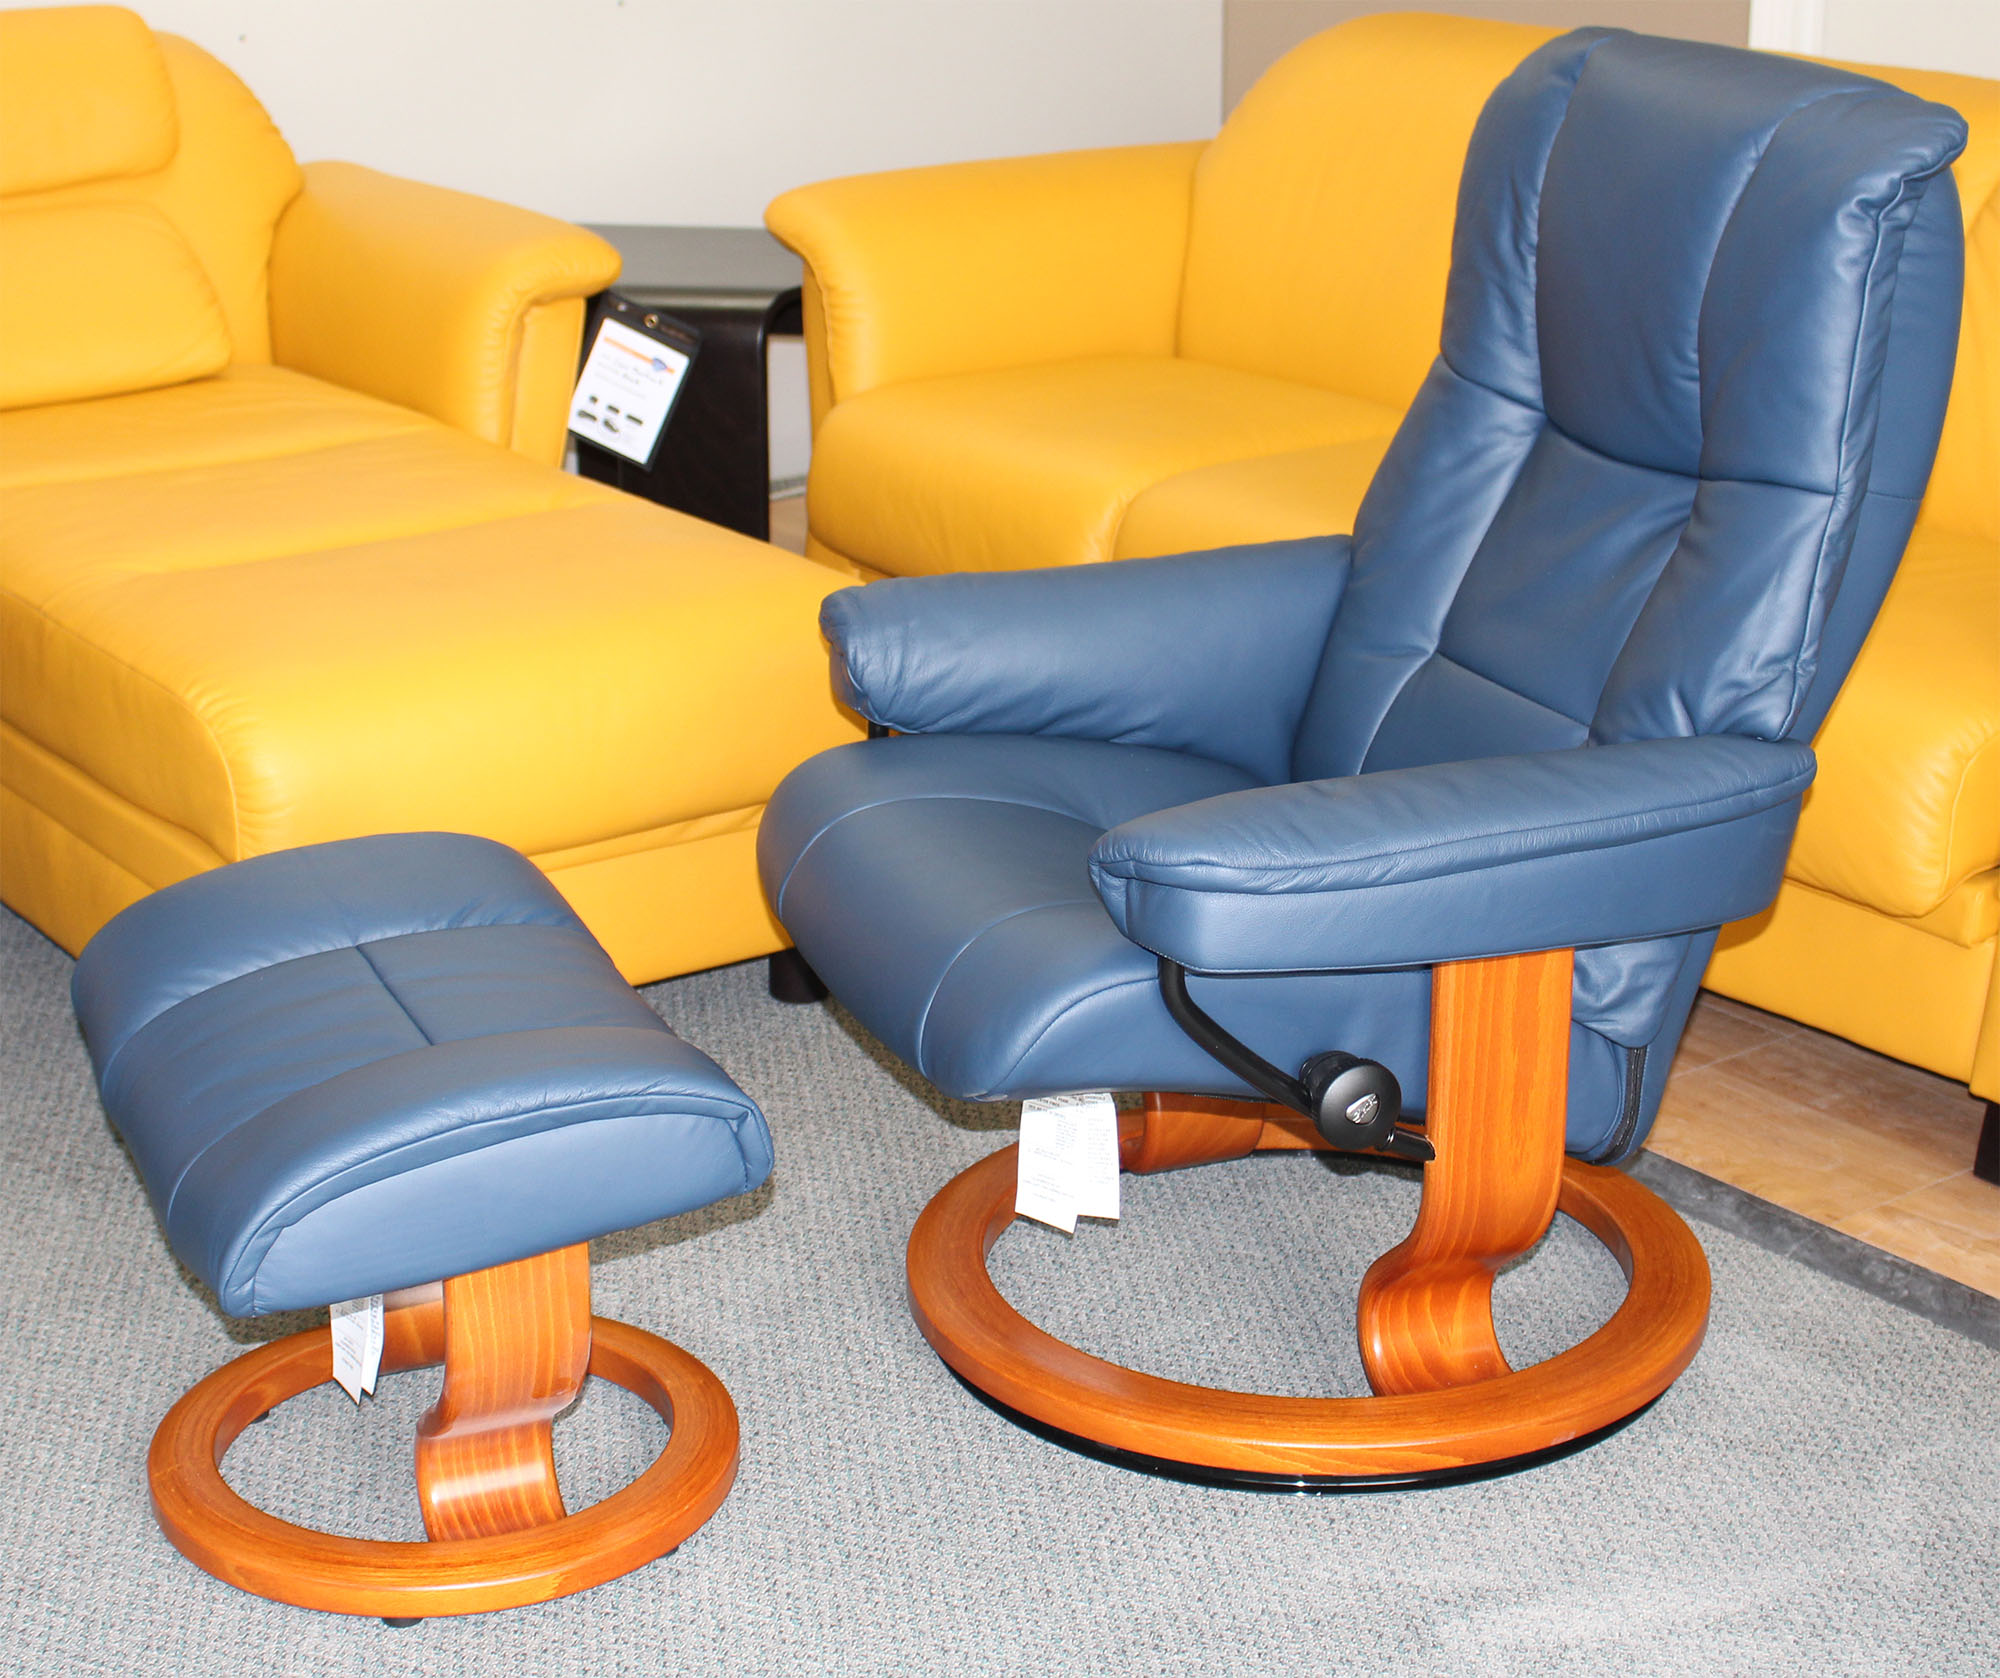 Stressless Paloma Stressless Kensington Large Mayfair Paloma Oxford Blue Leather Recliner Chair And Ottoman By Ekornes